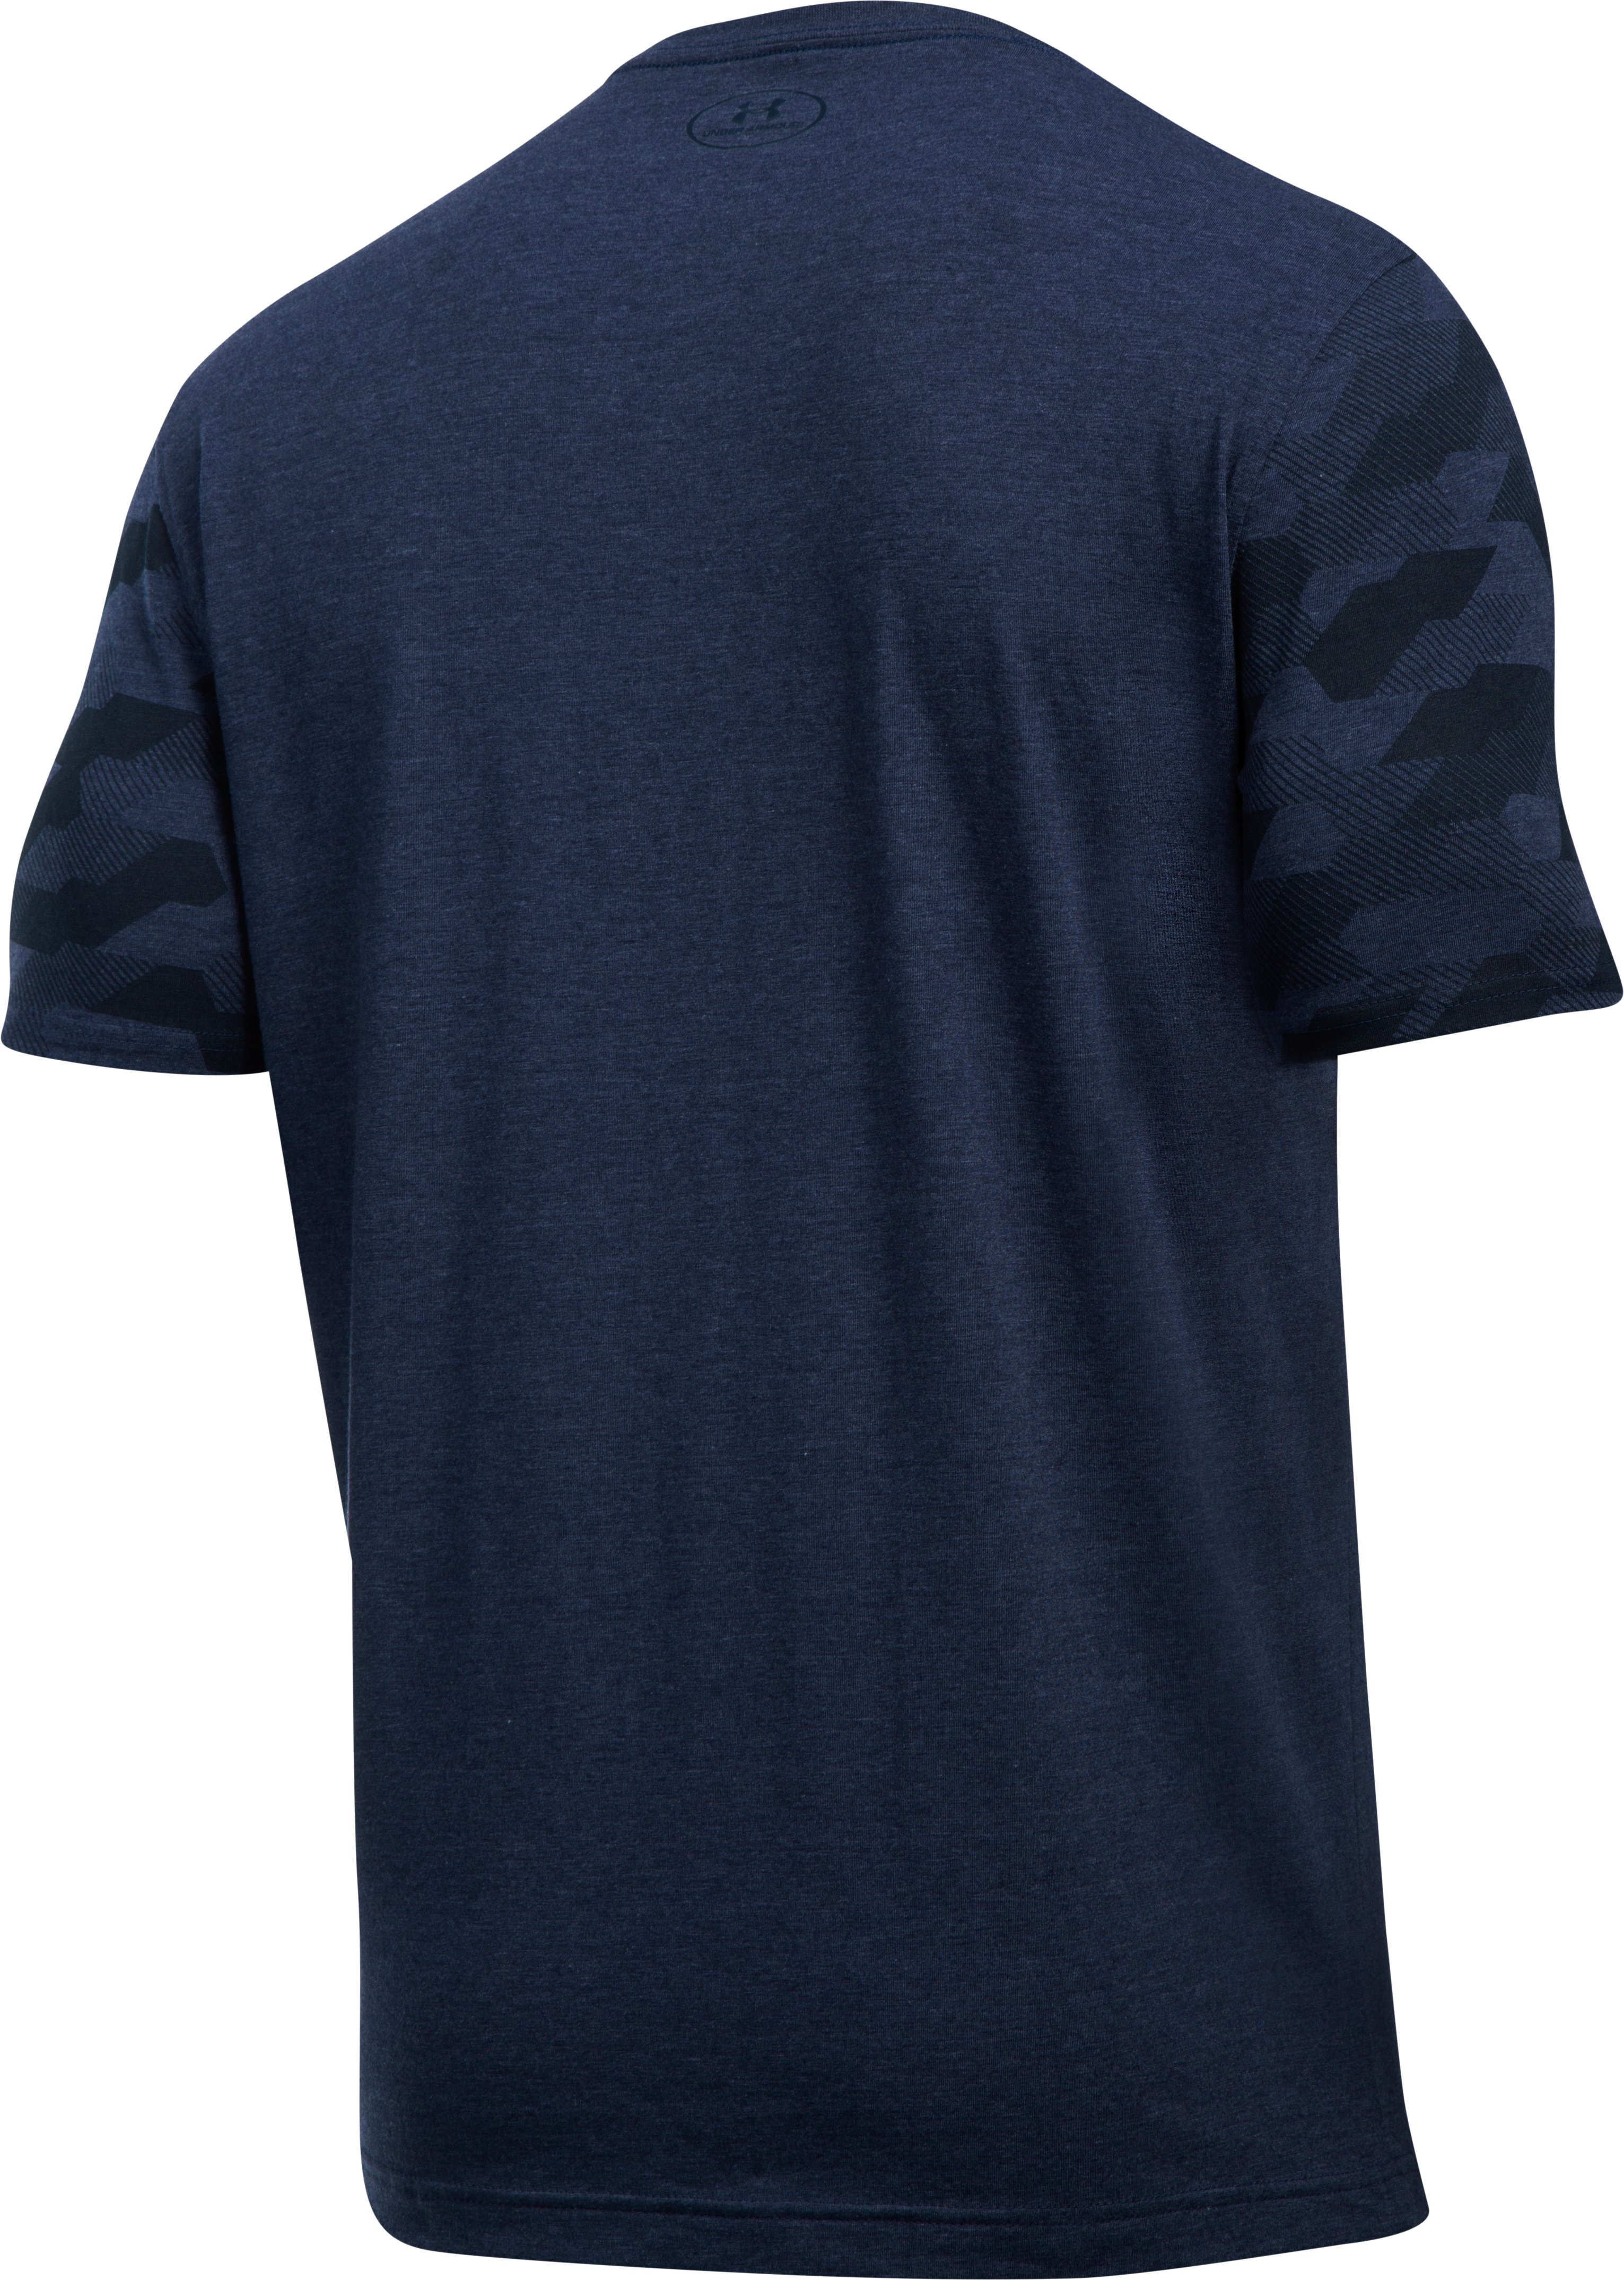 Men's SC30 Respect the Shot T-Shirt, Midnight Navy